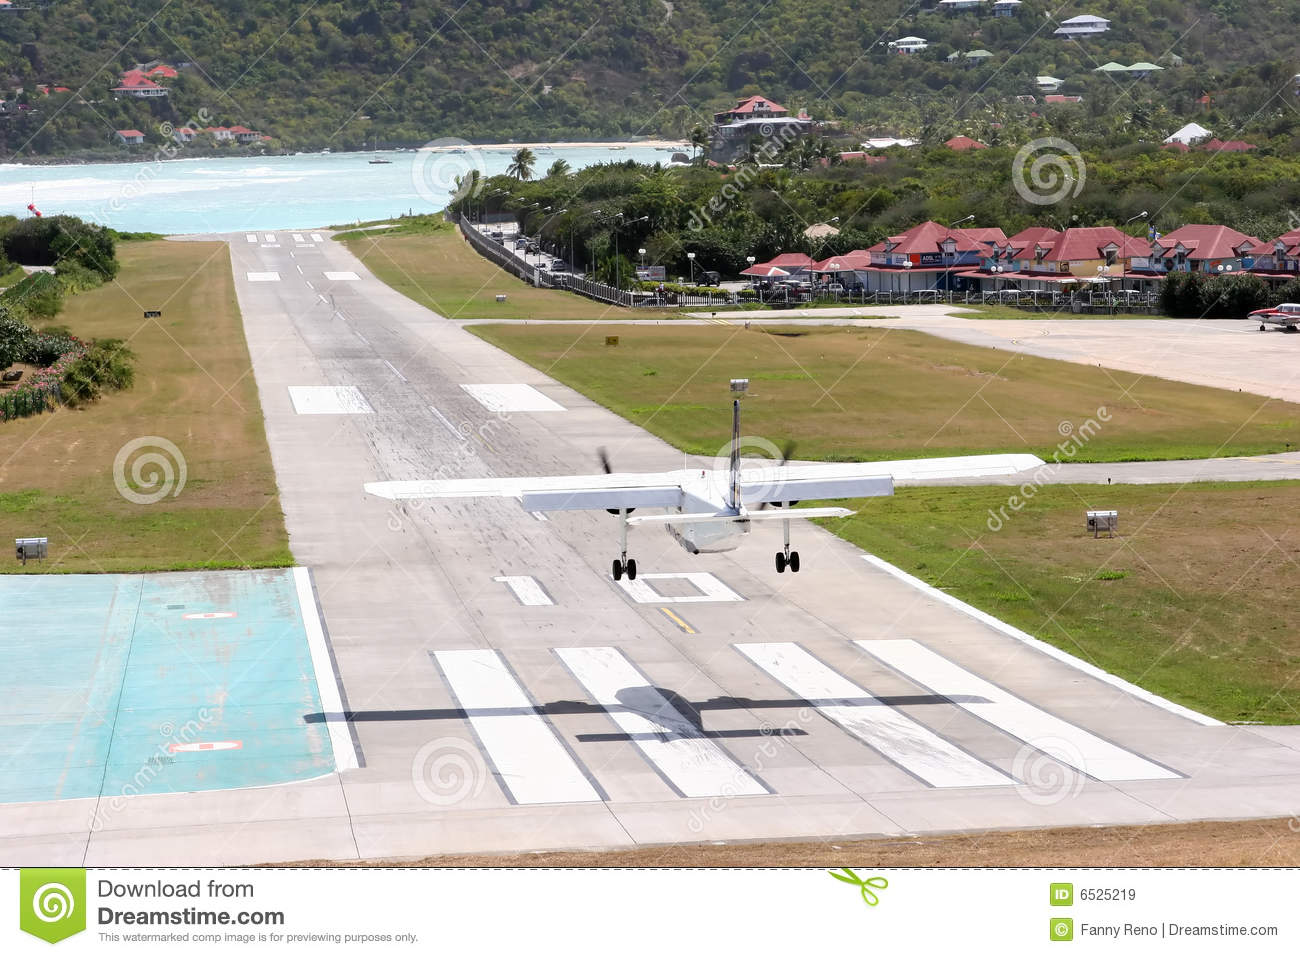 Landing at St. Barth airport